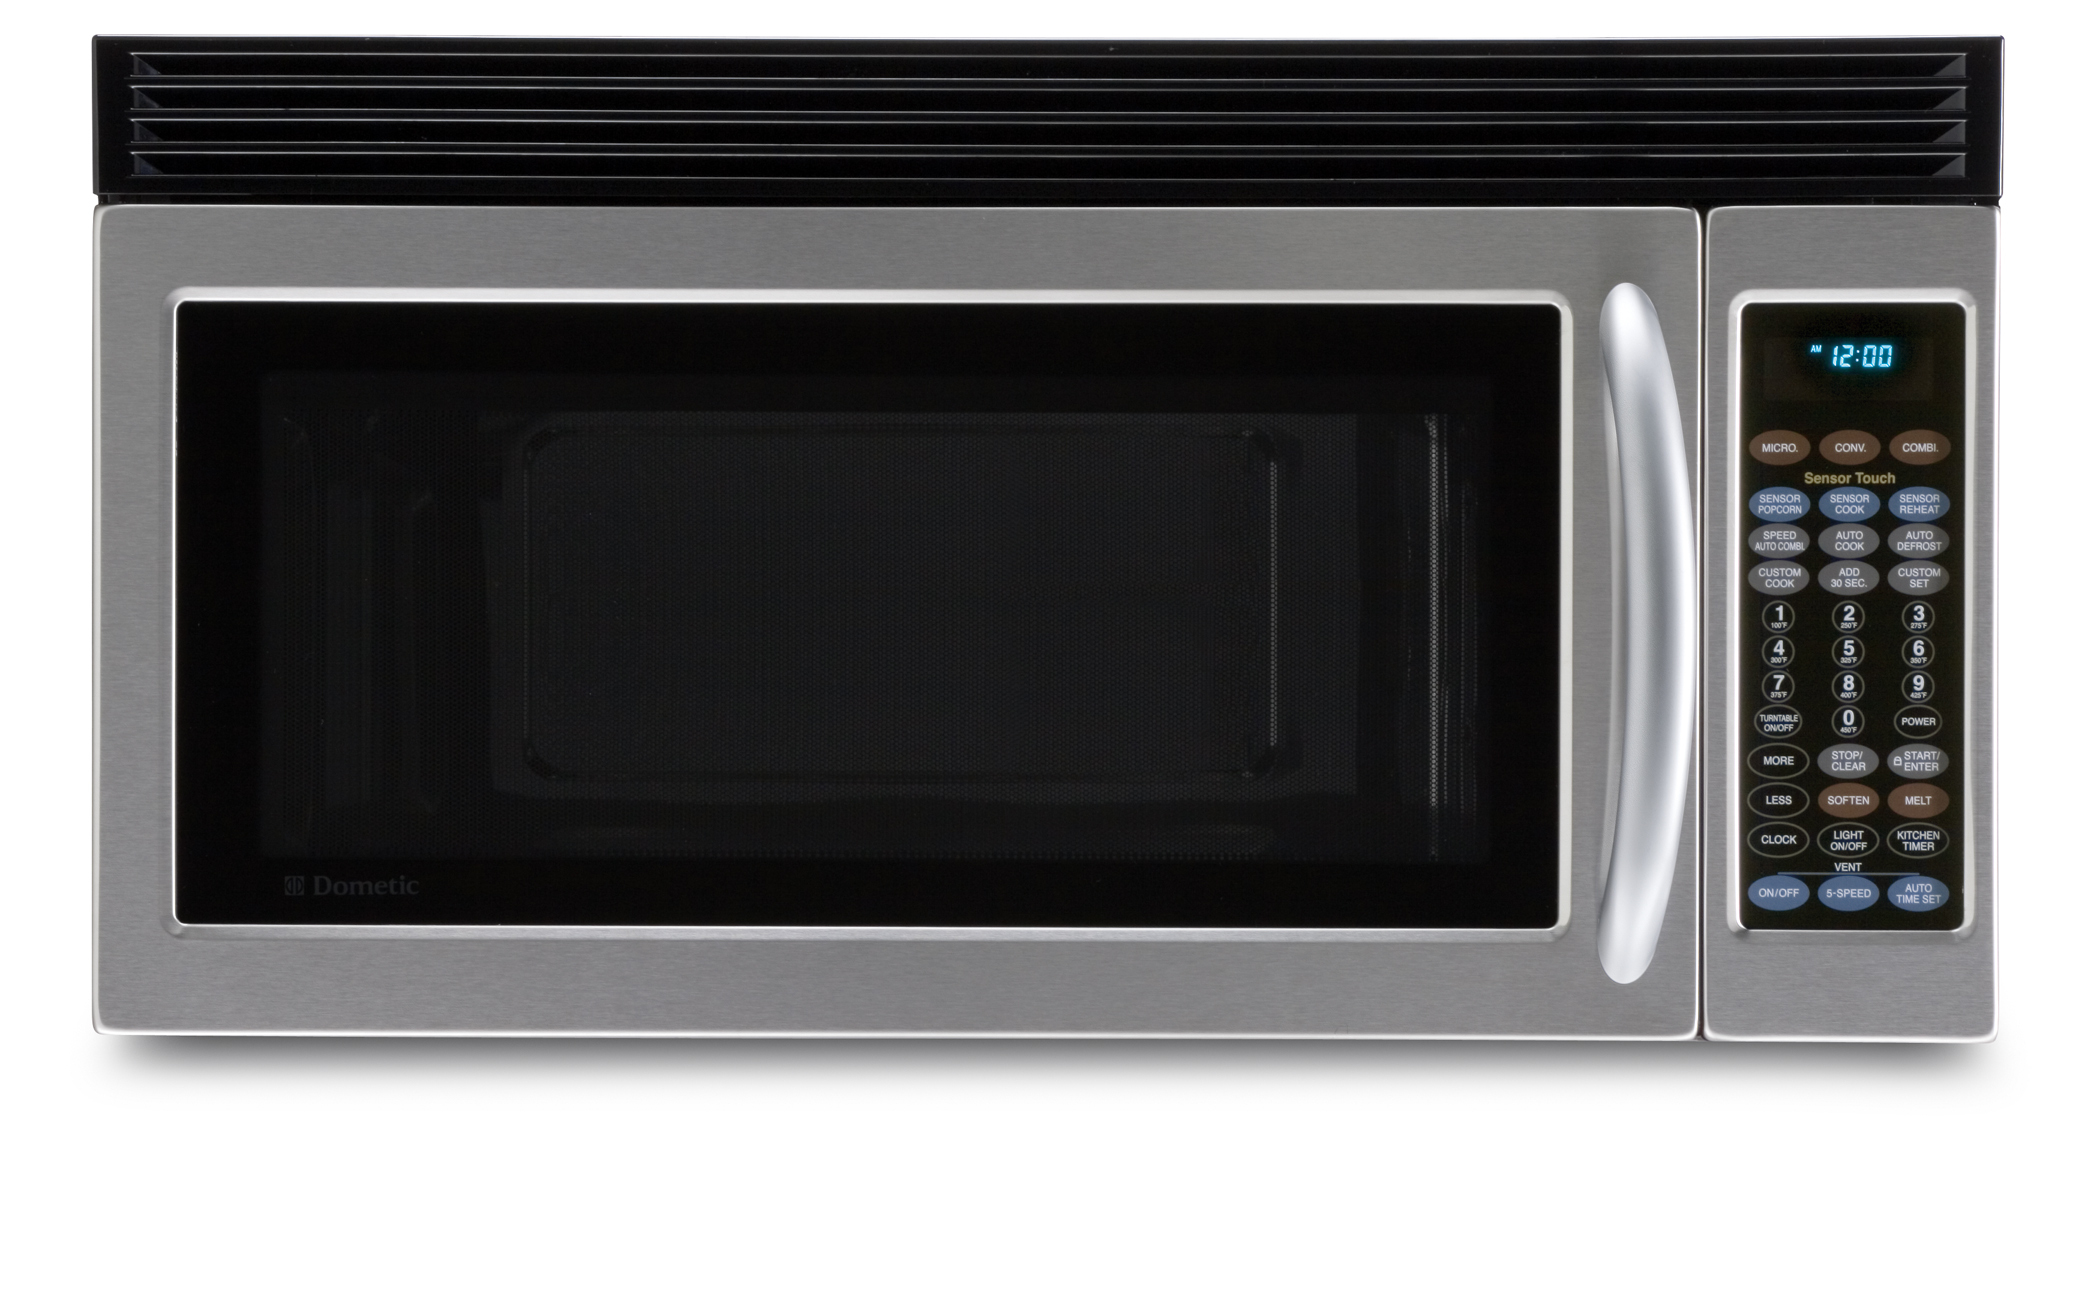 Dometic Rv Microwave Convection Oven 1 7 Cu Ft Stainless Steel S D